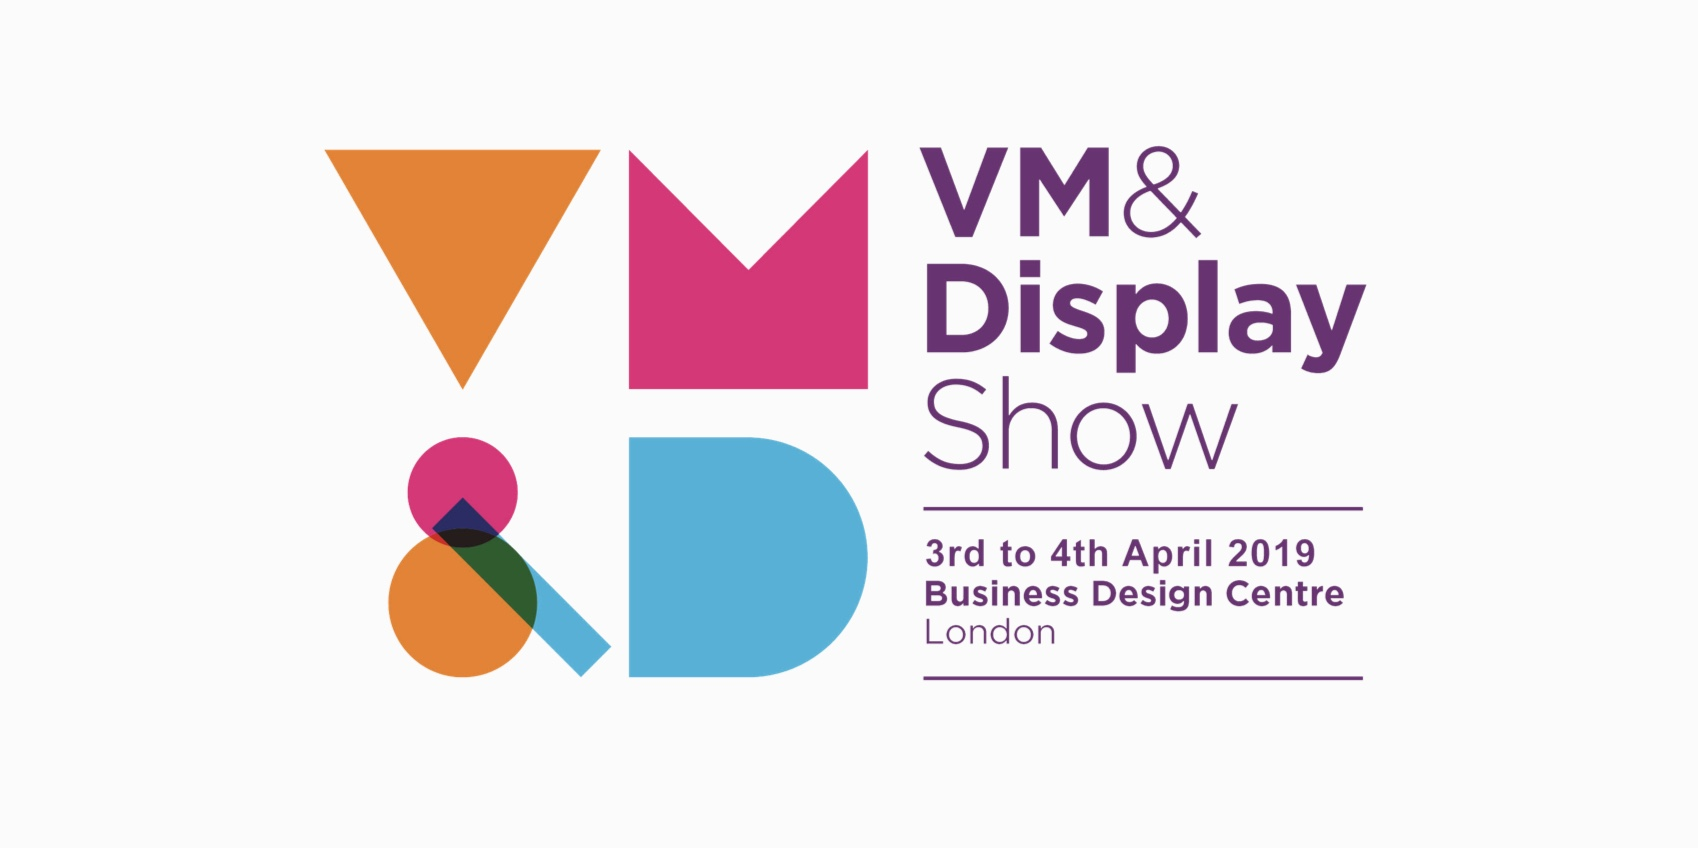 vm-display-show-header-apr-2019.jpg